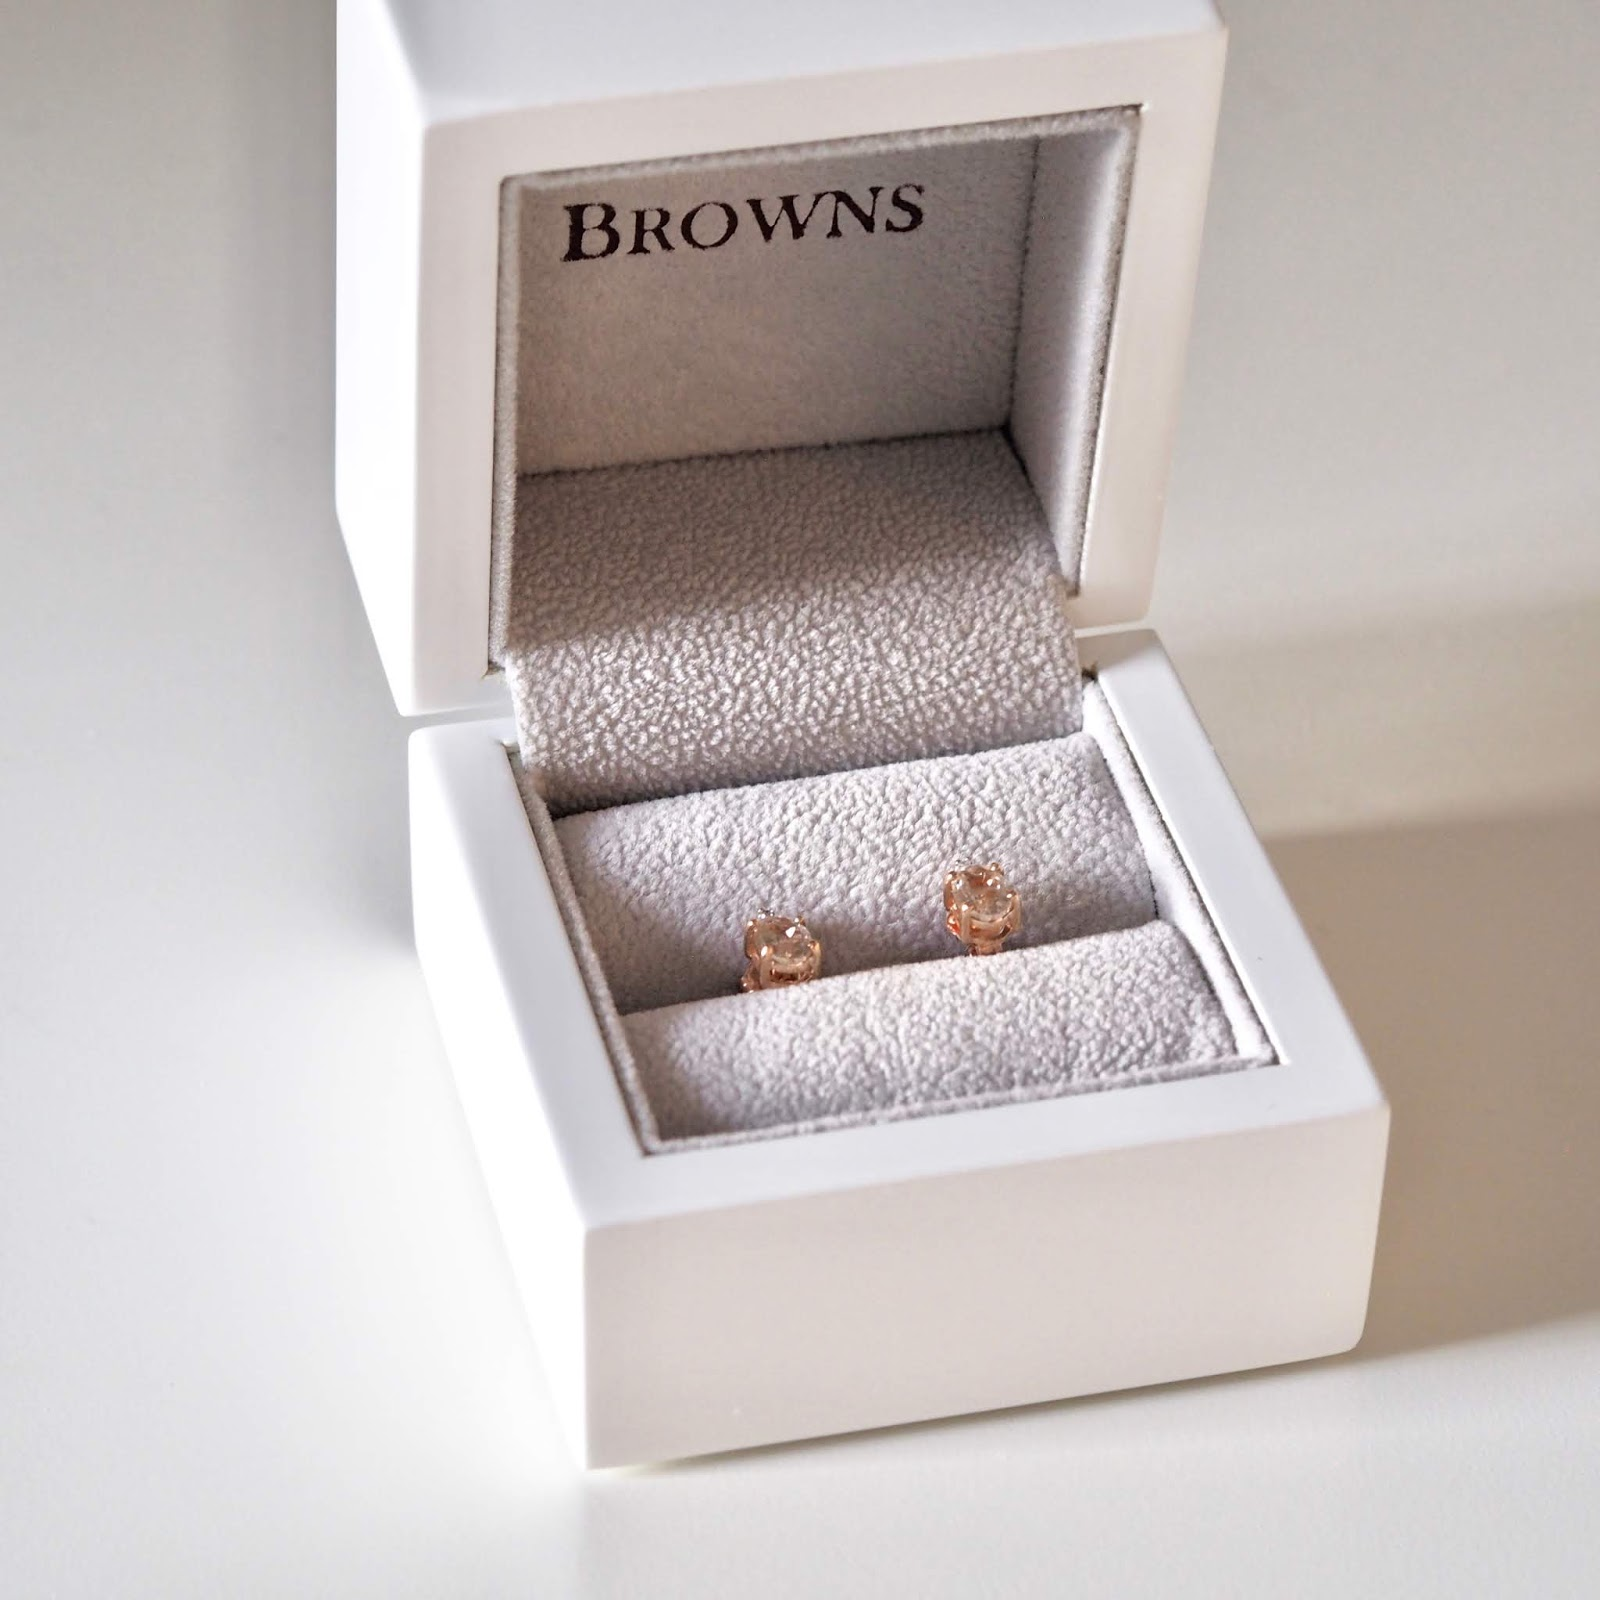 rose gold morganite and diamond stud earrings from Browns jewellers in Yorkshire